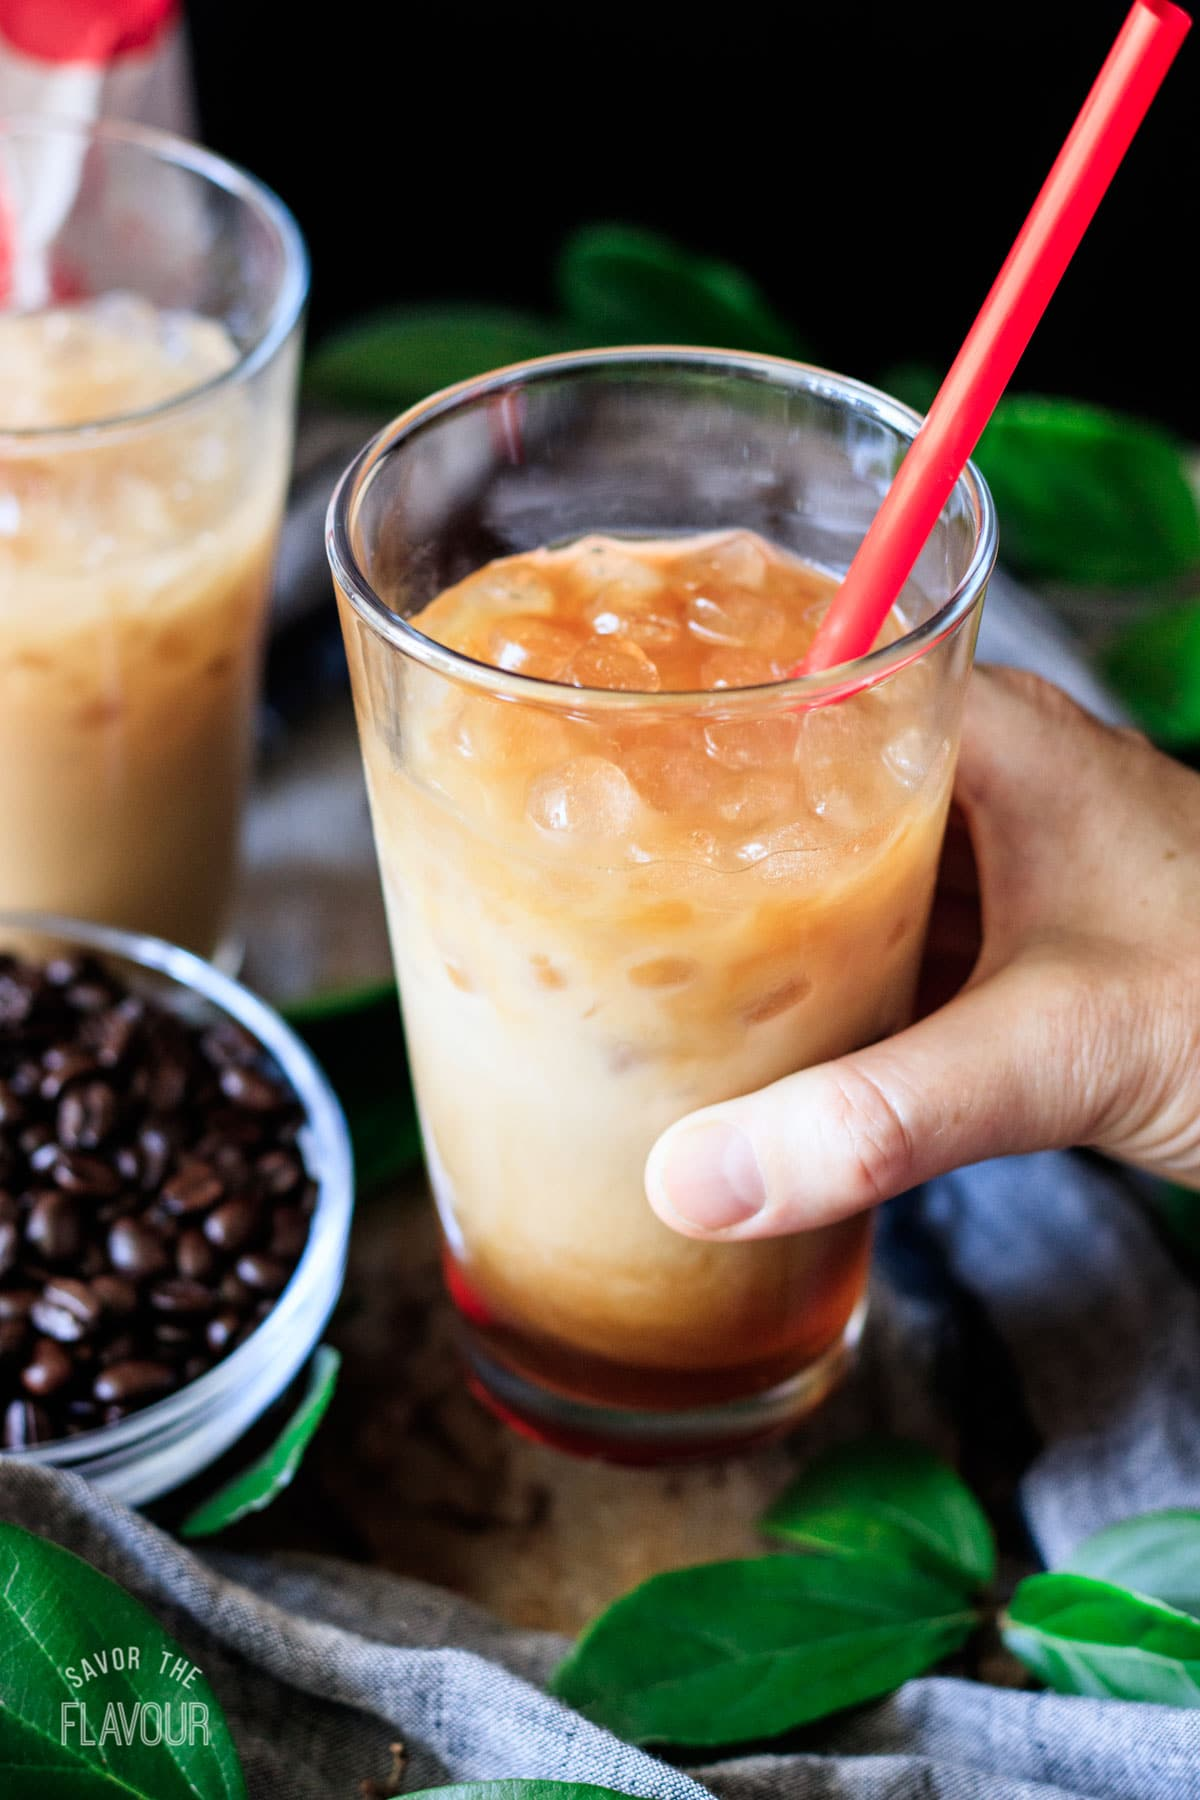 person holding a glass of Chick-fil-A iced coffee